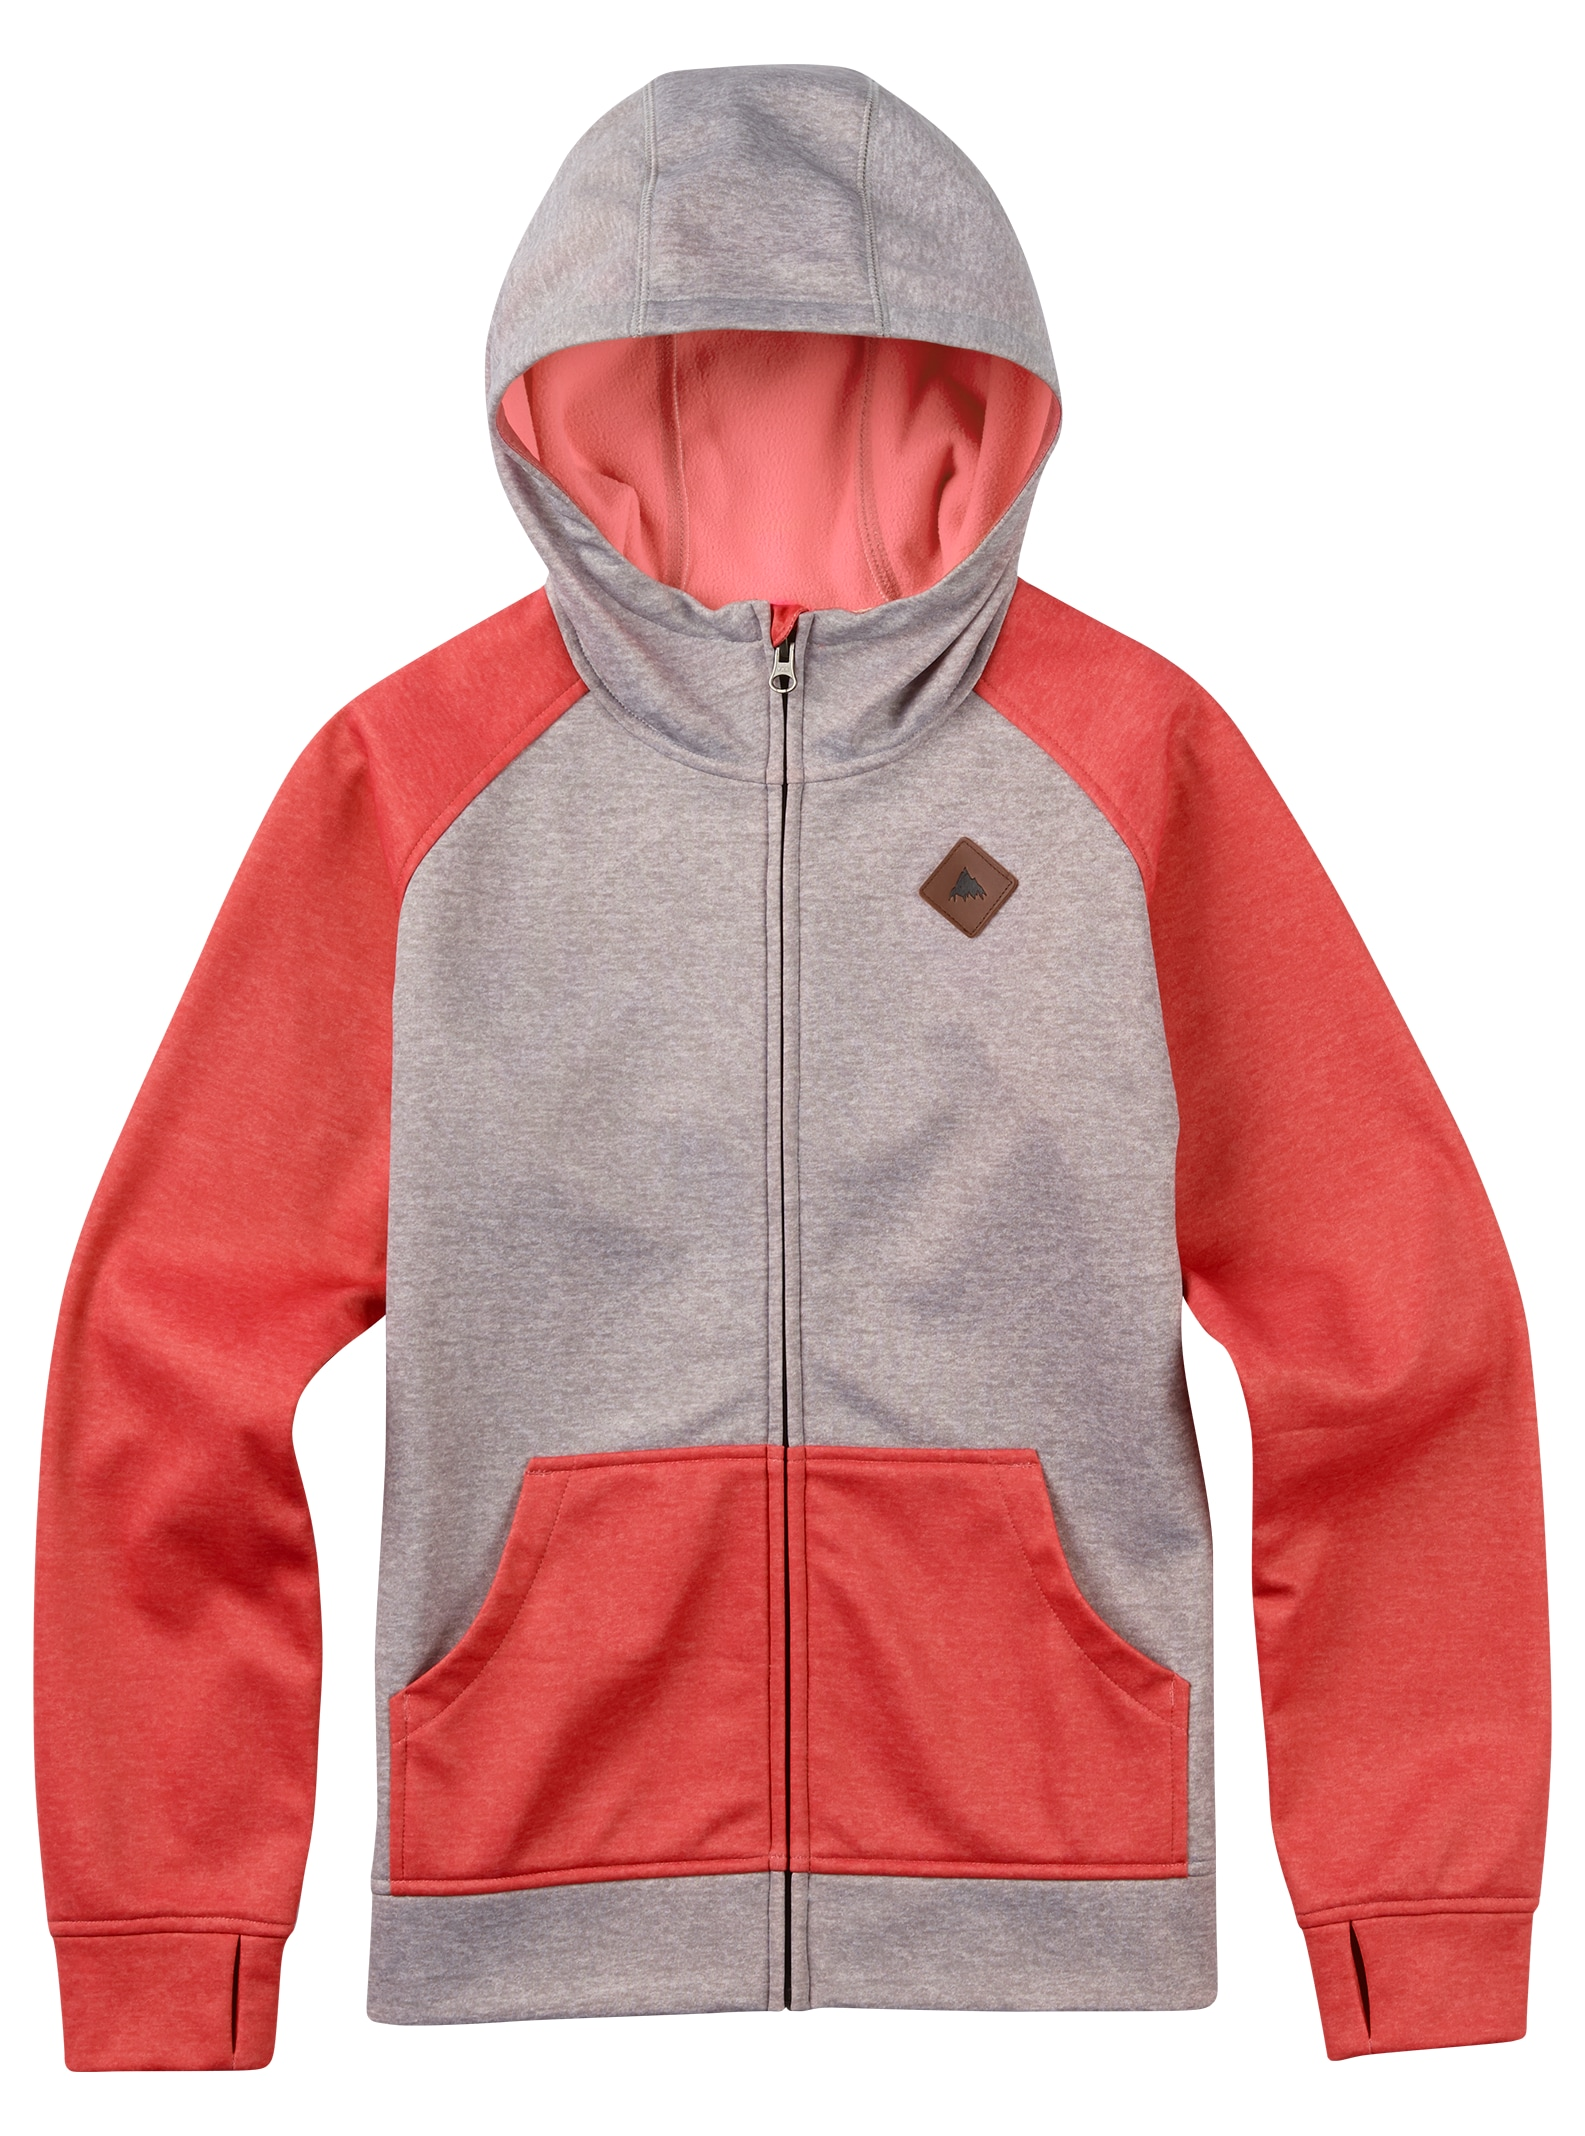 Burton - Sweat à capuche zippé Scoop fille affichage en Canvas Heather / Coral Heather